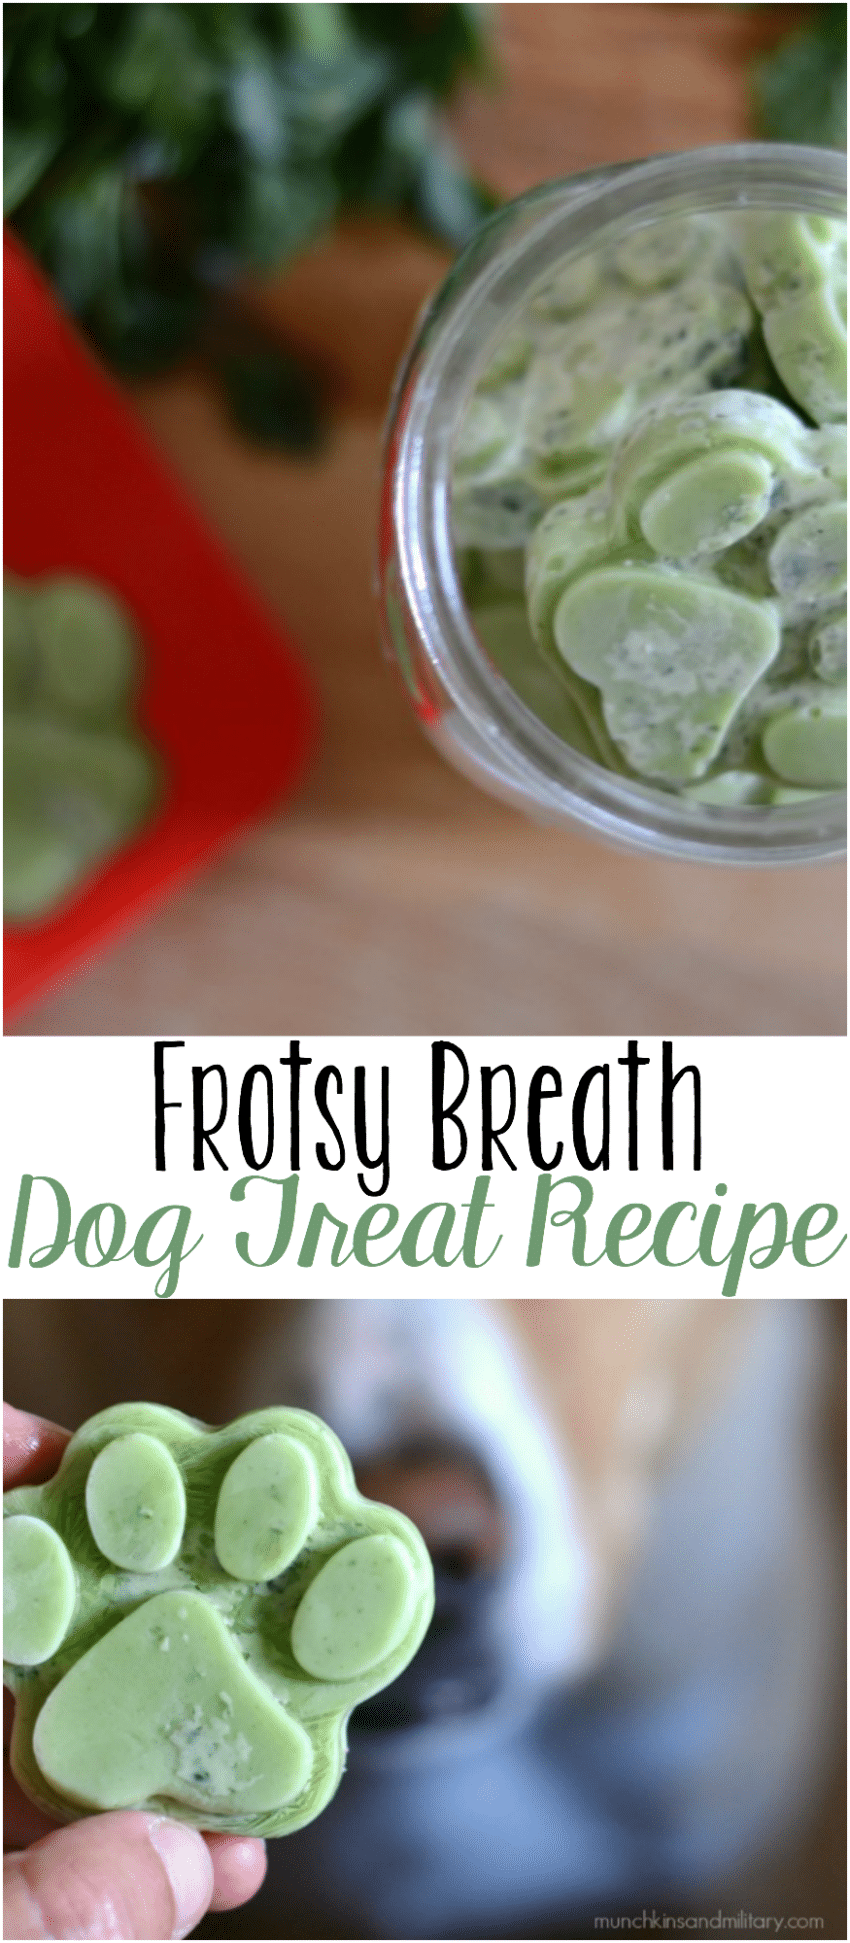 Frosty breath homemade dog treat recipe